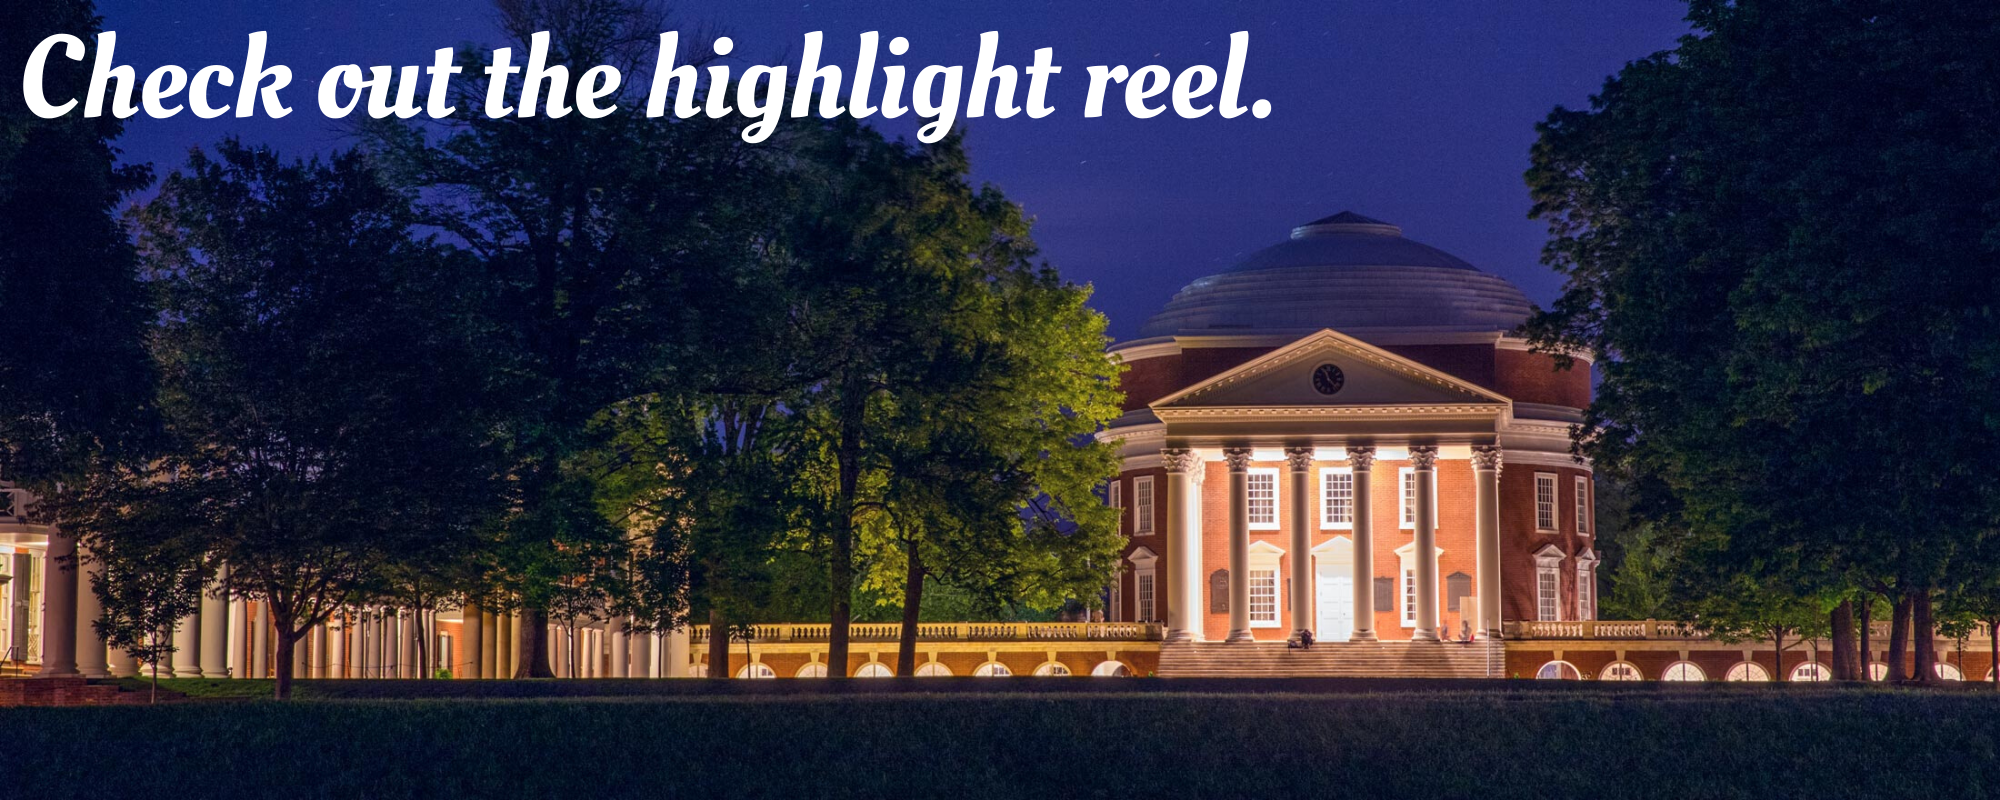 "An image of the rotunda with the text ""check out the highlight reel."""